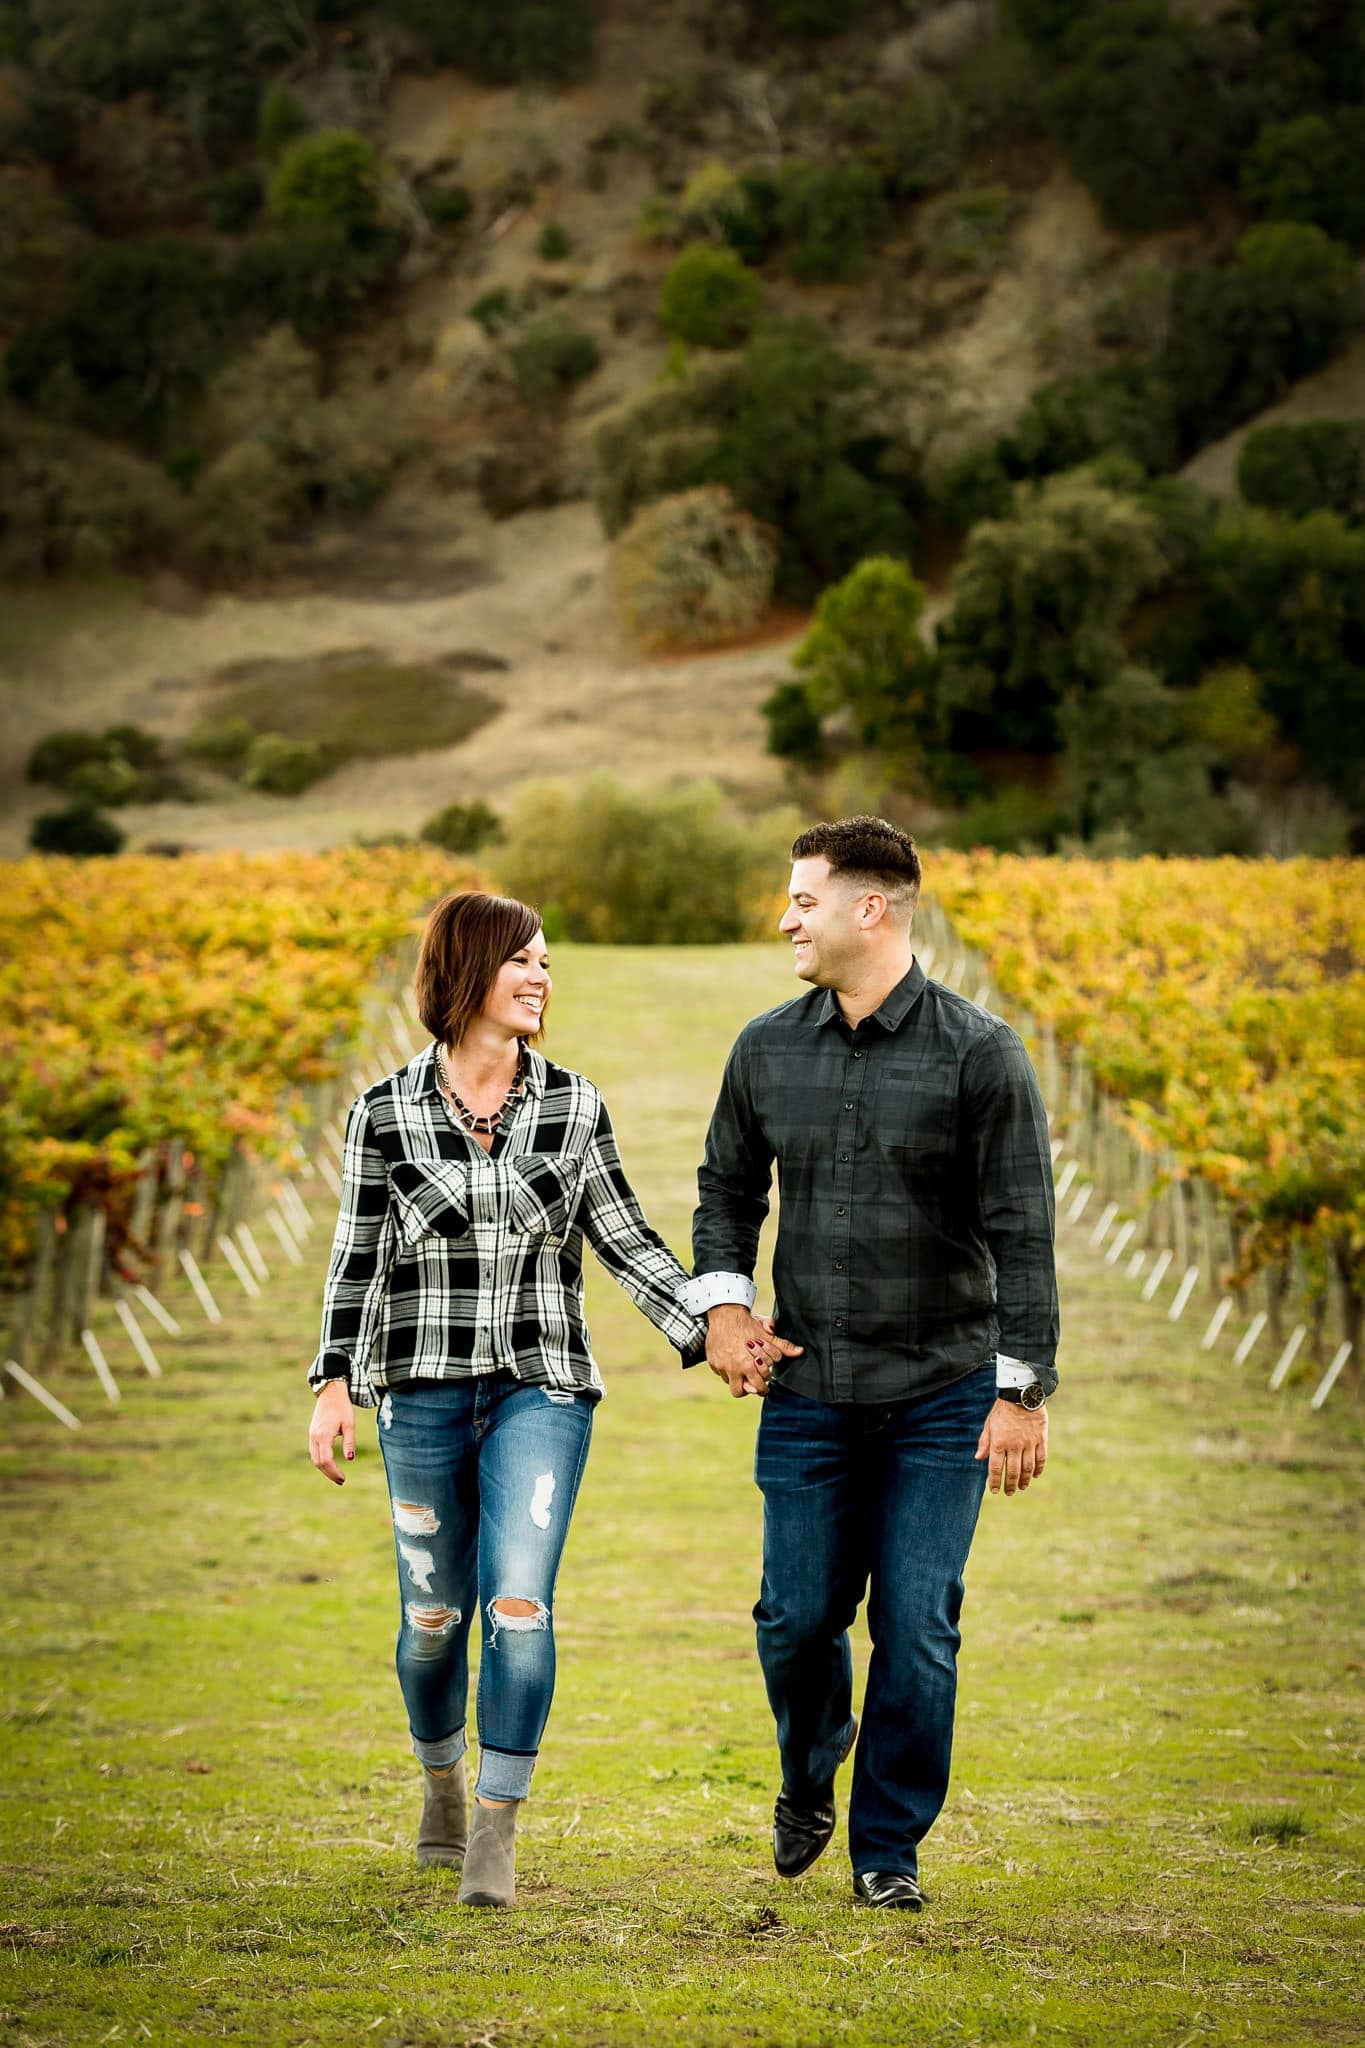 Close up of engaged couple smiling and walking amongst colorful rows of grapes at Artesa Winery's Vineyard in Napa Valley